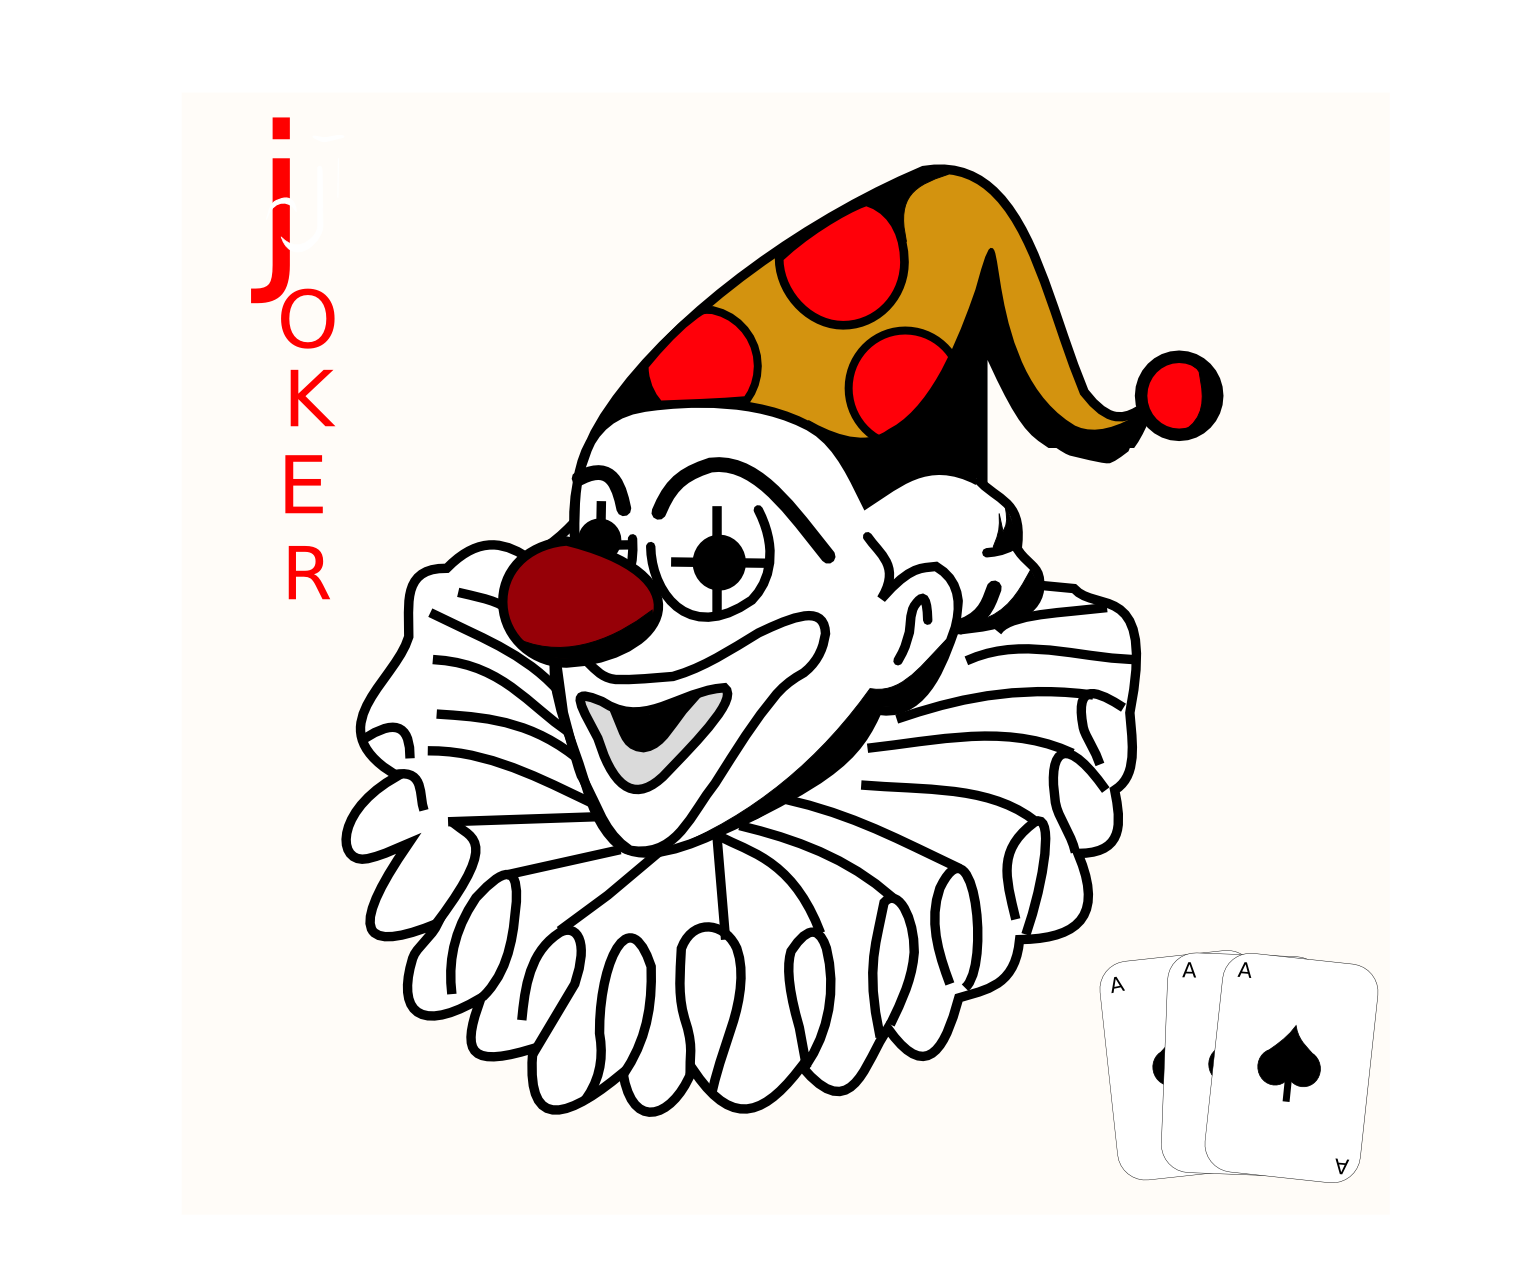 joker face   recreation  games  card deck  cards symbols playing cards clipart deck of cards clipart black and white